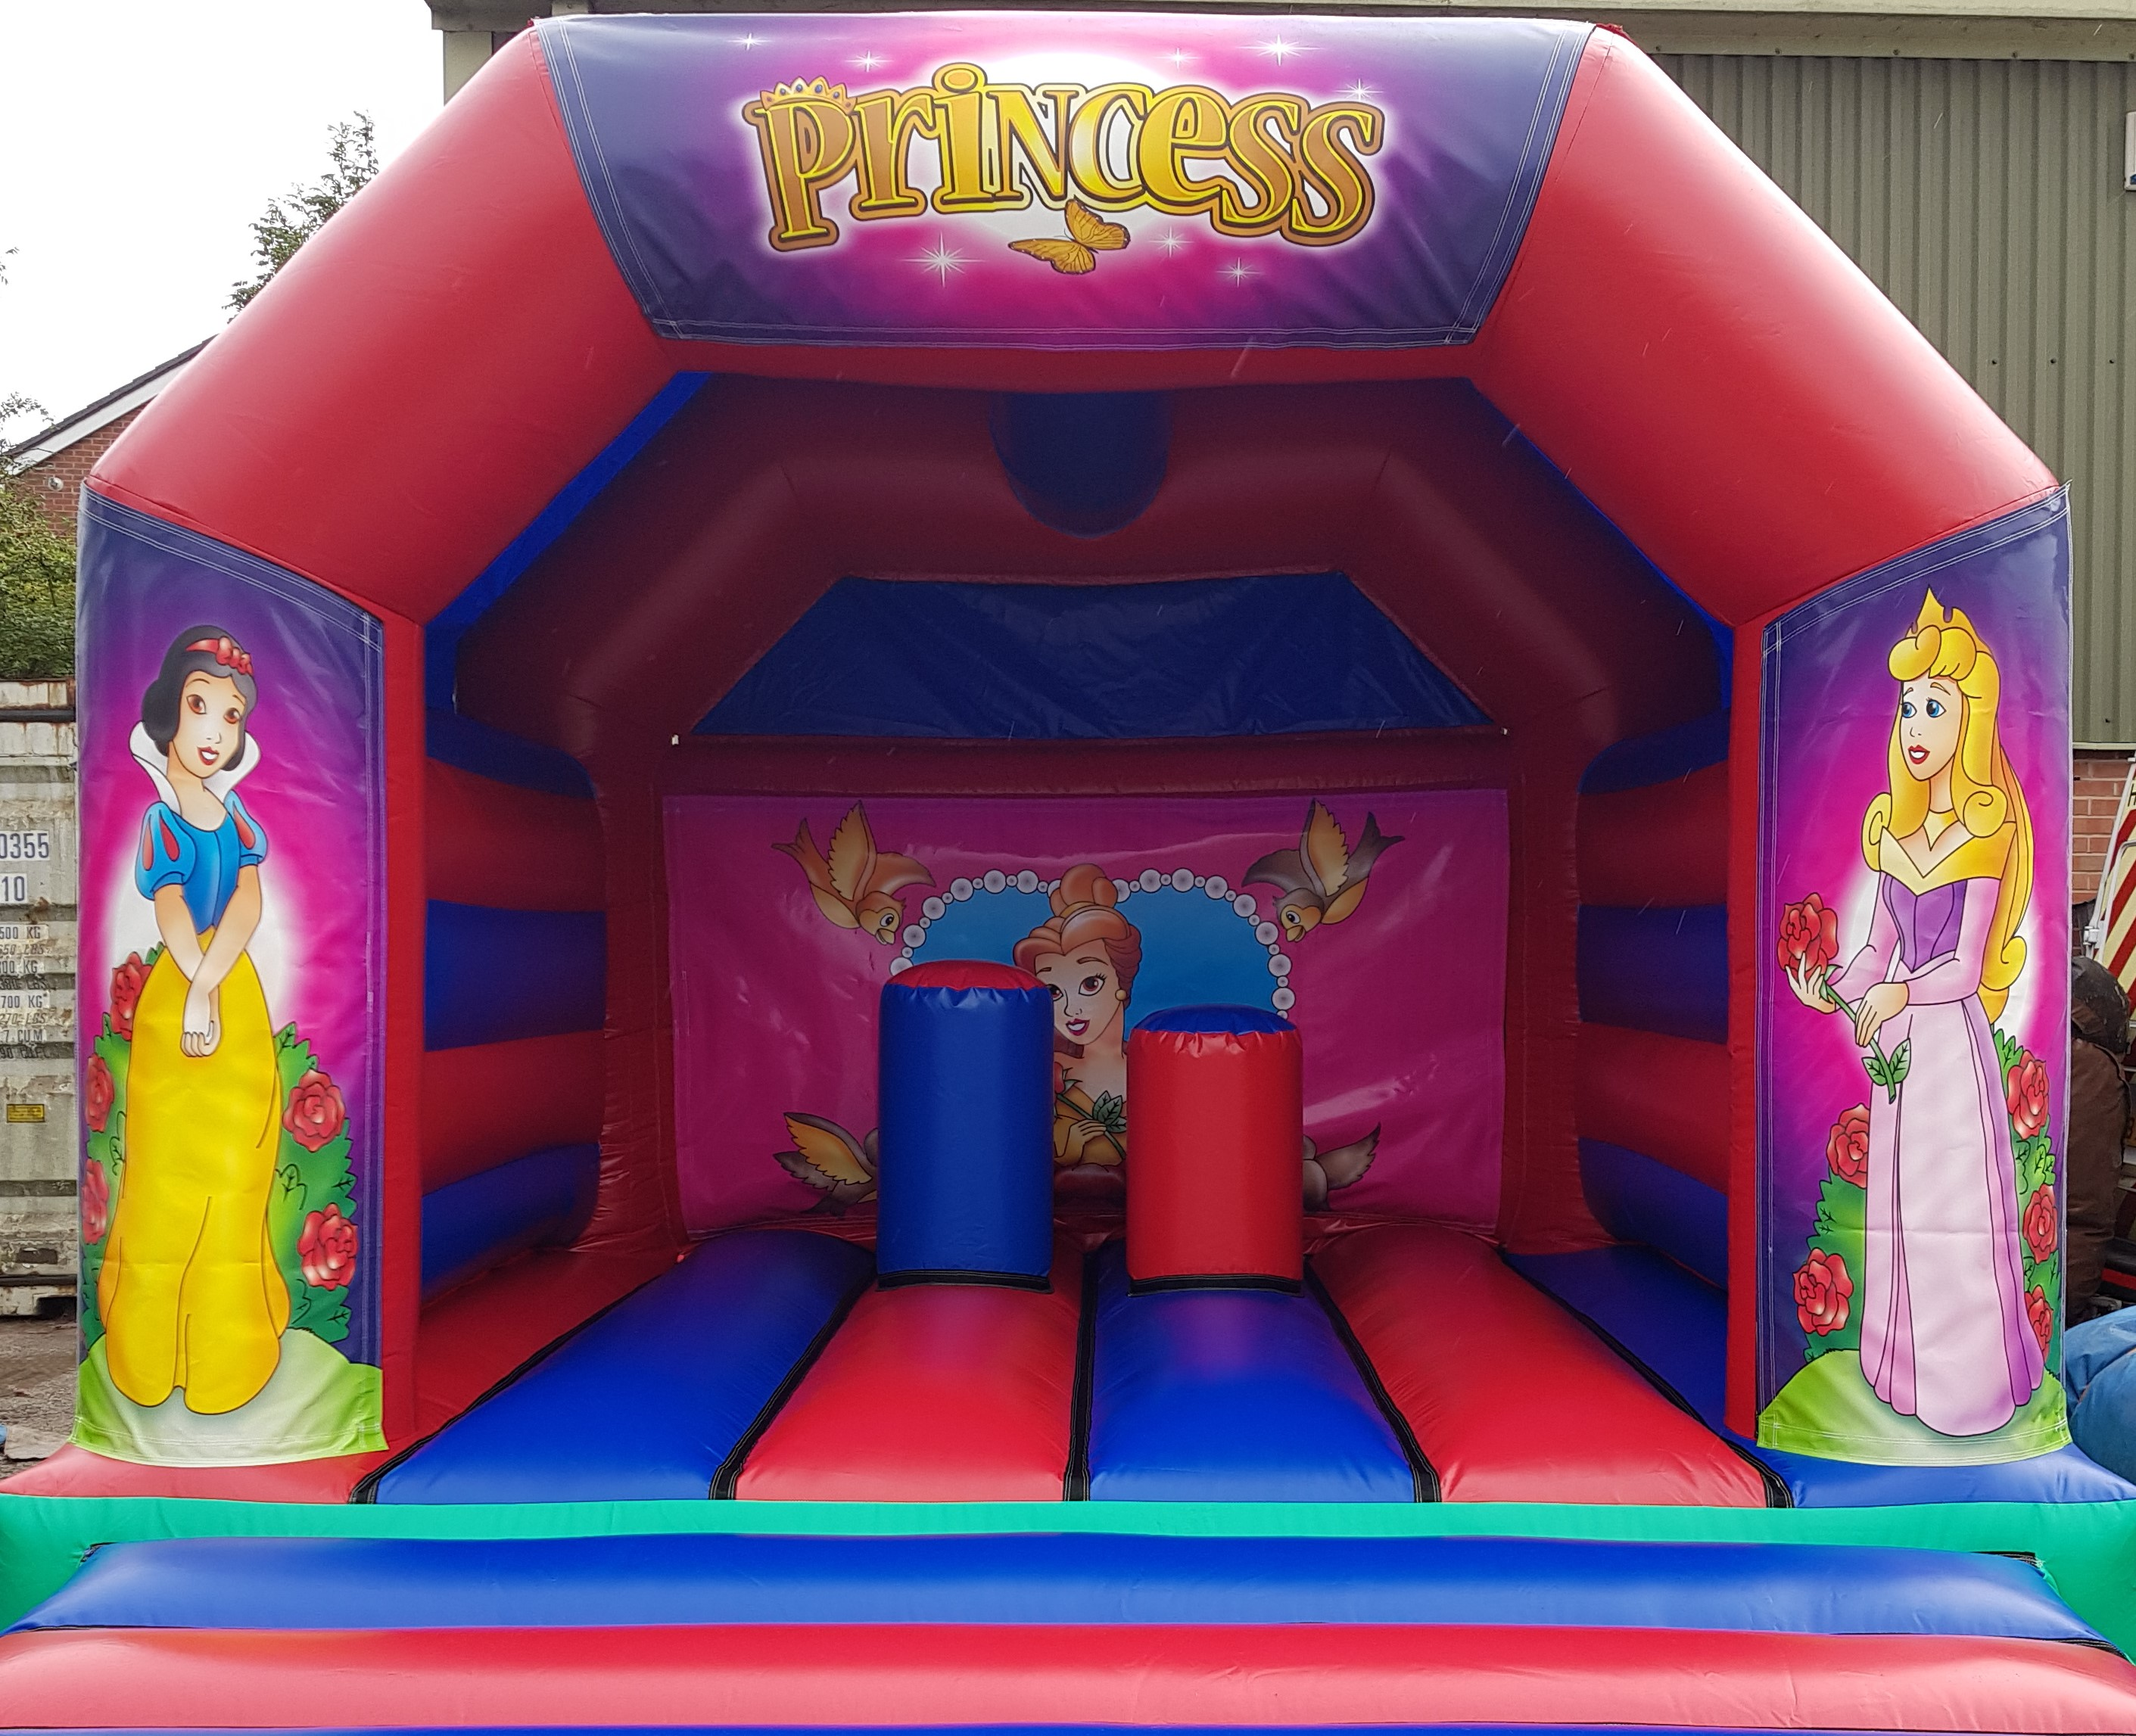 Pincess Bouncy Castle, Isle of Wight